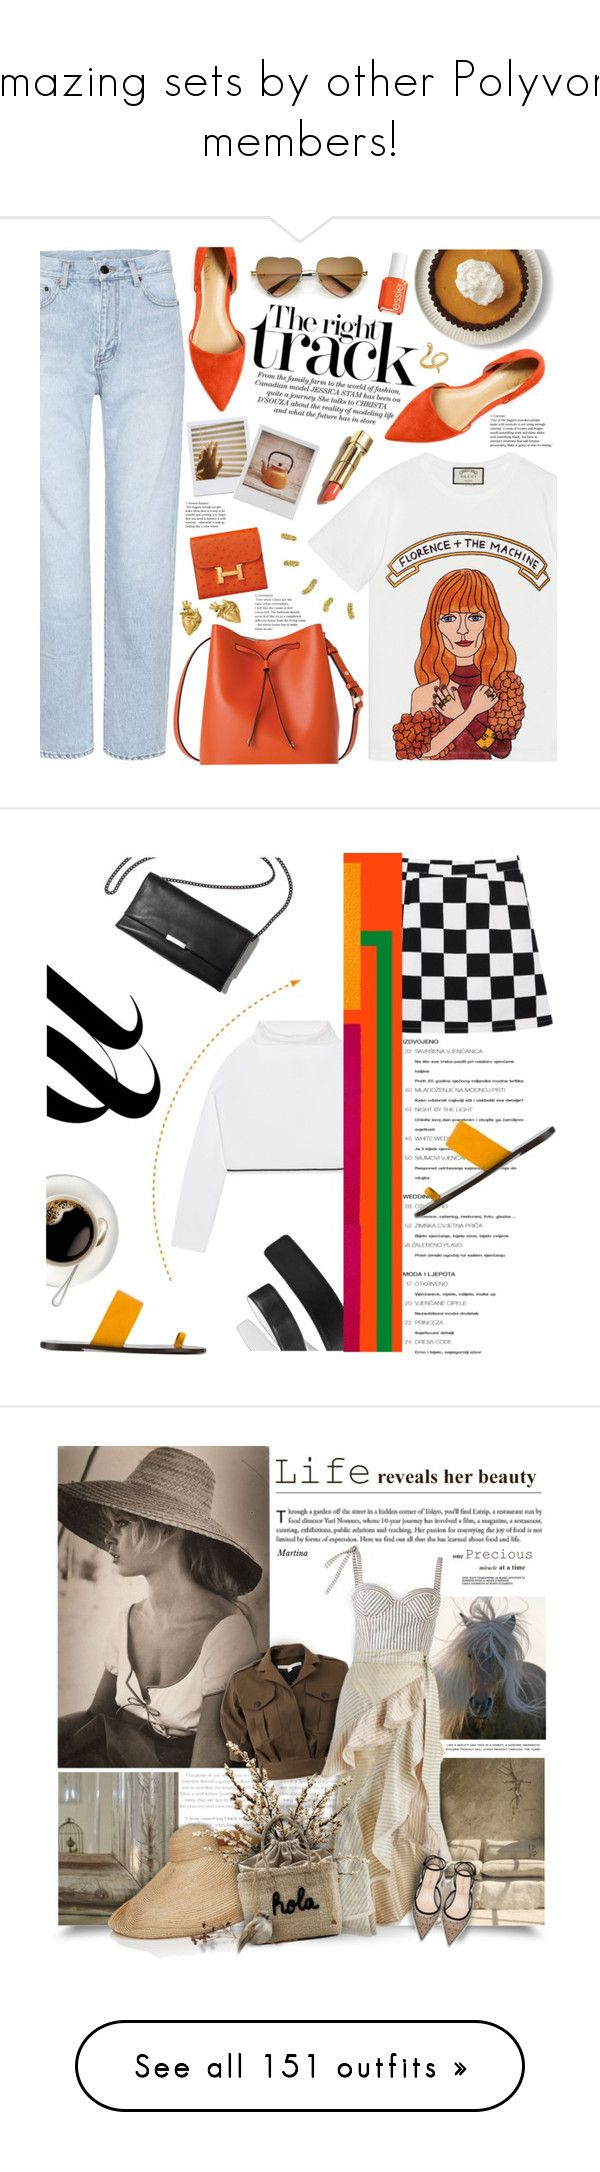 """""""Amazing sets by other Polyvore members!"""" by sunnydays4everkh ❤ liked on Polyvore featuring Gucci, Yves Saint Laurent, Lodis, Polaroid, StrangeFruit, Essie, Madina Visconti di Modrone, DKNY, All Tomorrow's Parties and Loeffler Randall"""